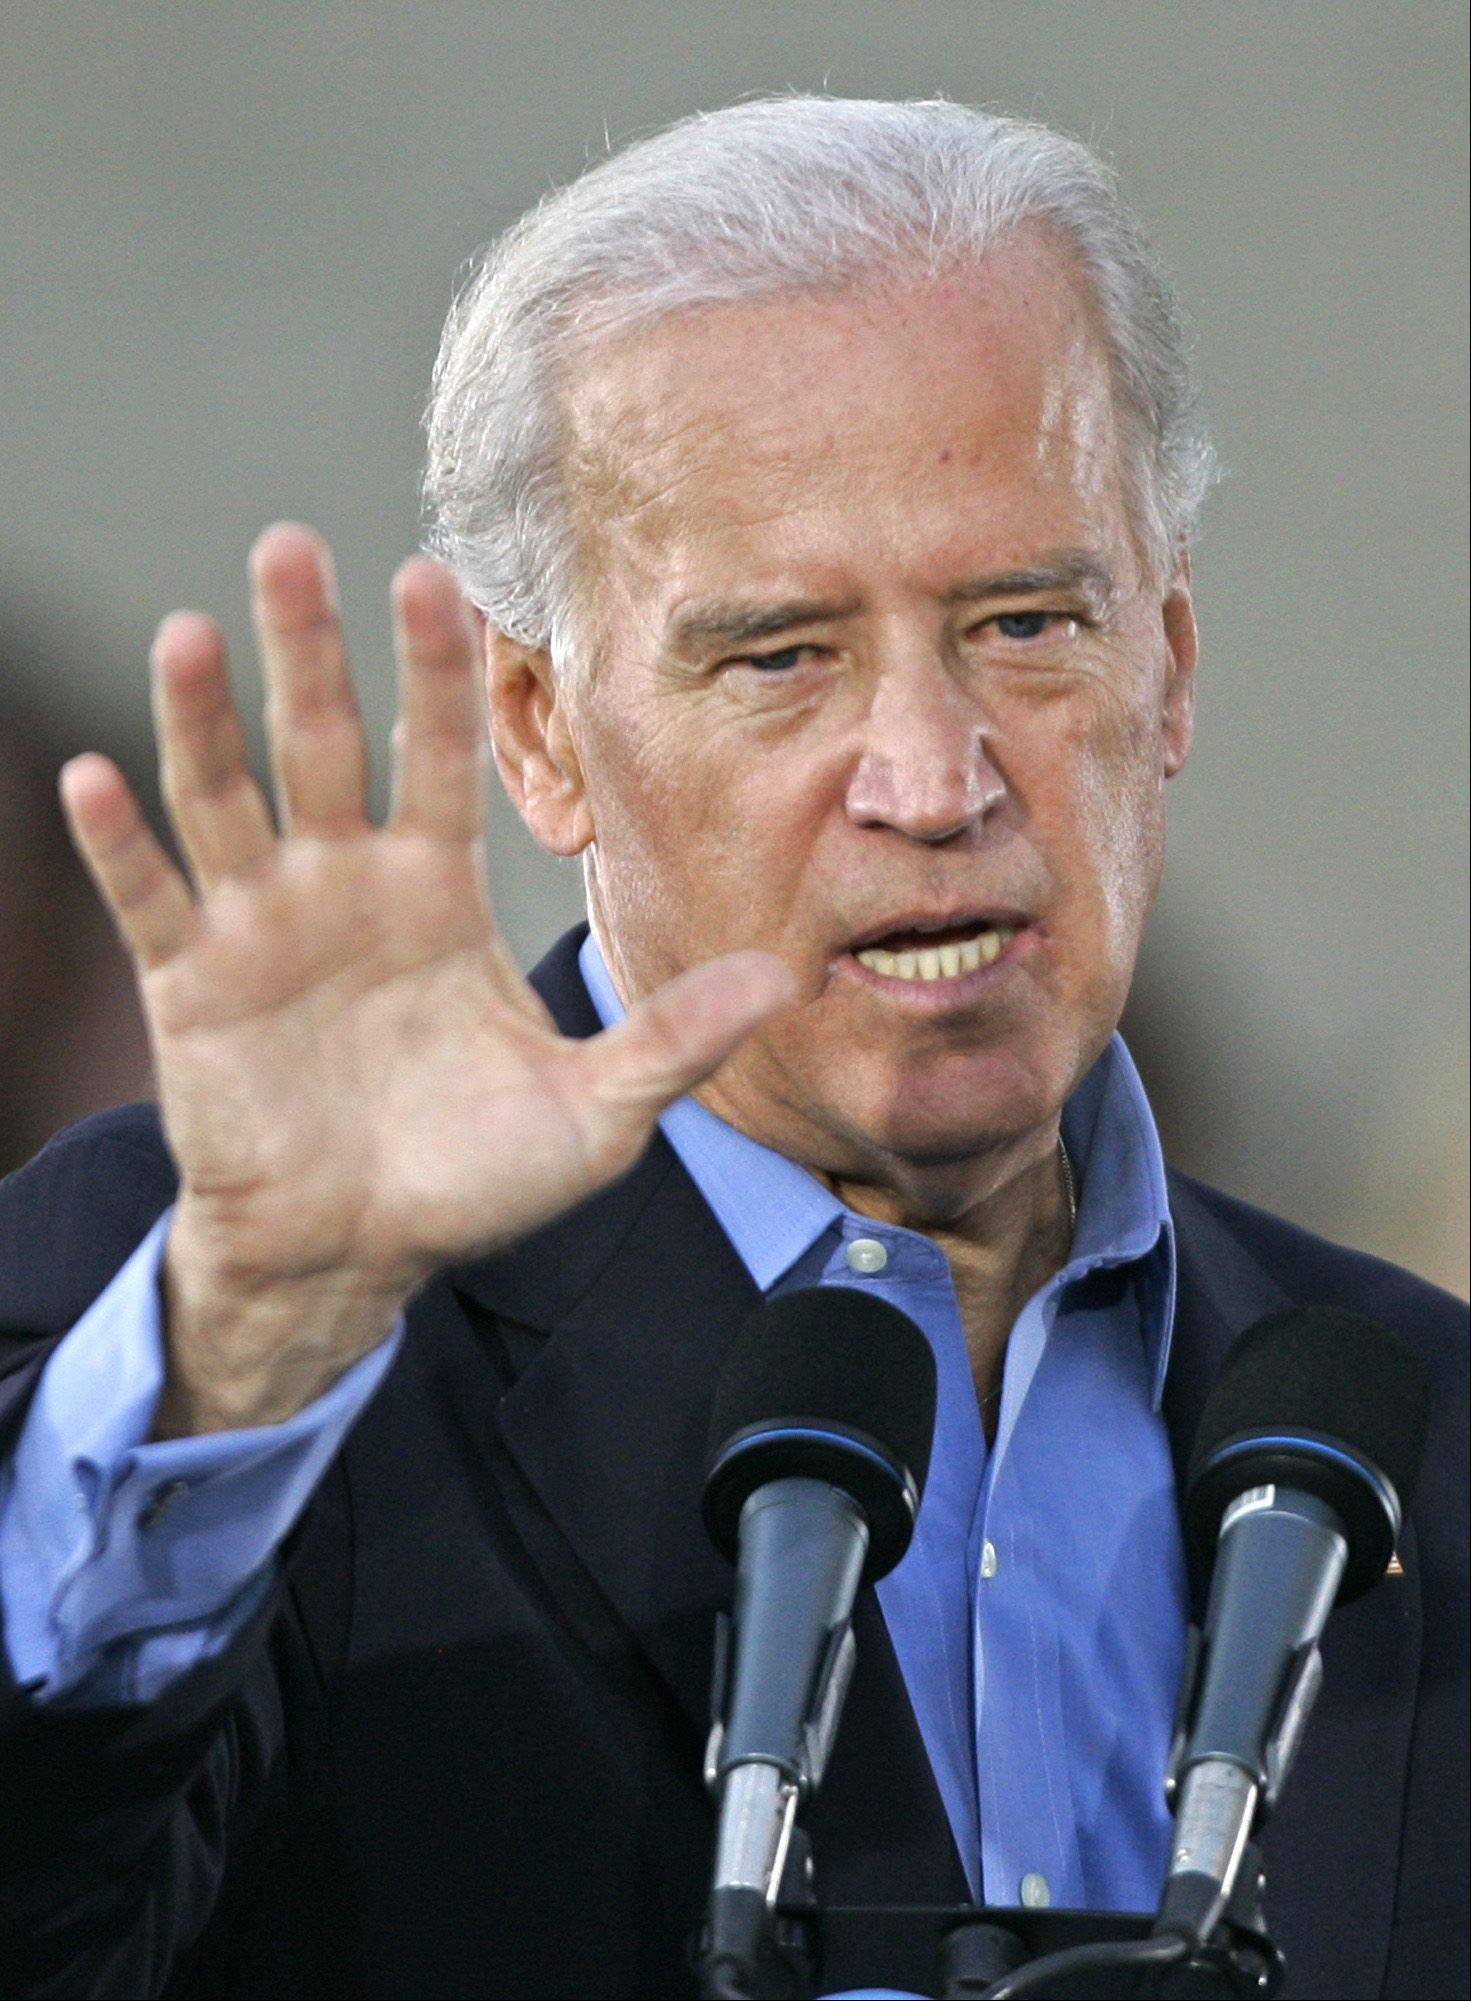 Vice presidential Joe Biden dispensed with some homespun wisdom Tuesday -- about protecting oneself with a double-barrel shotgun.